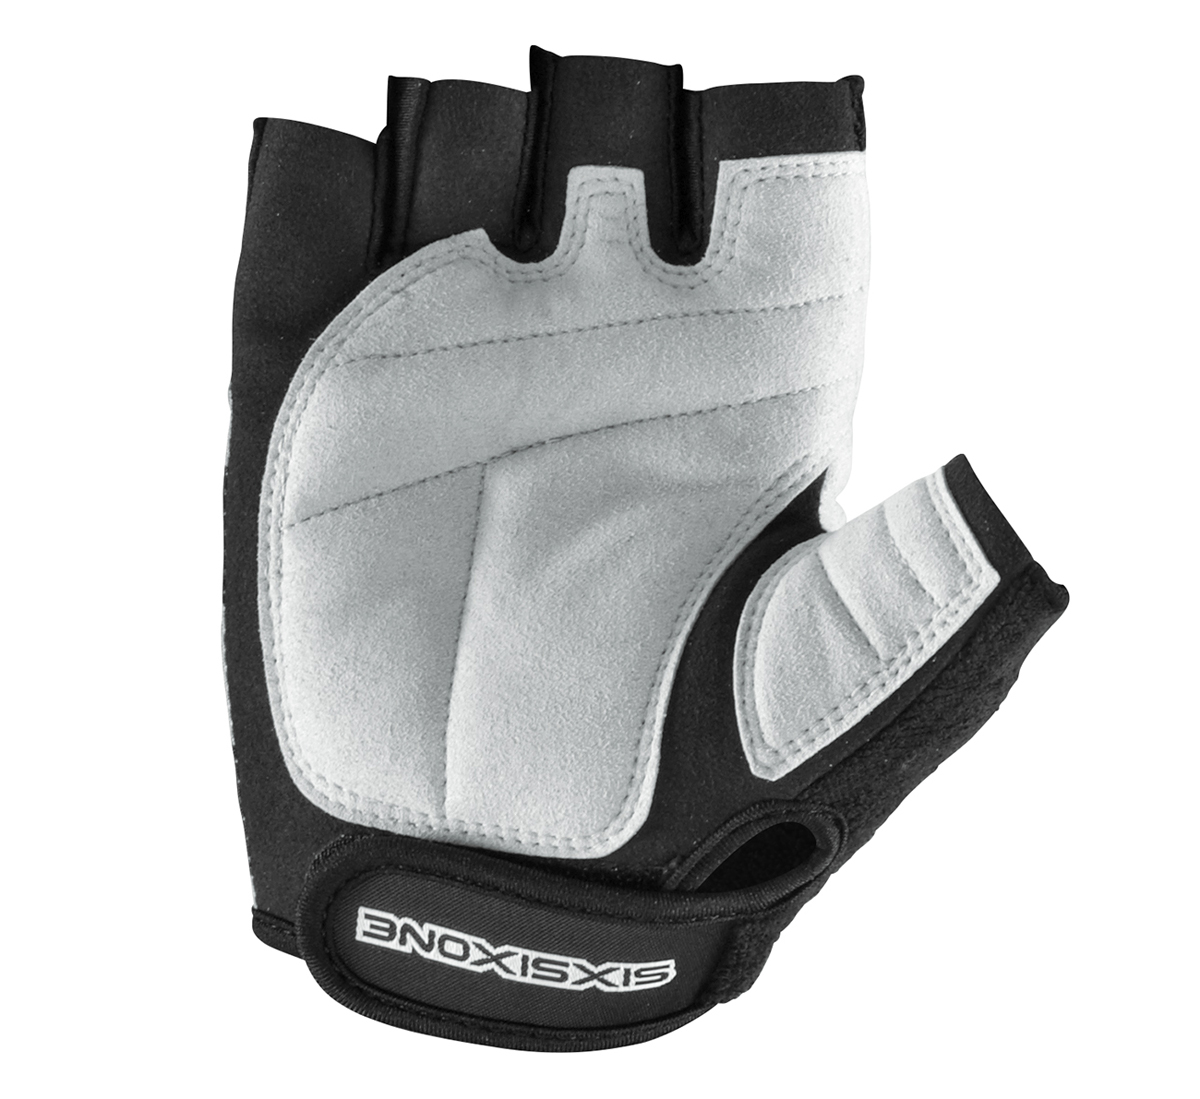 661-Altis-Short-Finger-Cycling-Gloves-BLACK-SILVER-or-WHITE-BLACK-6734 thumbnail 6